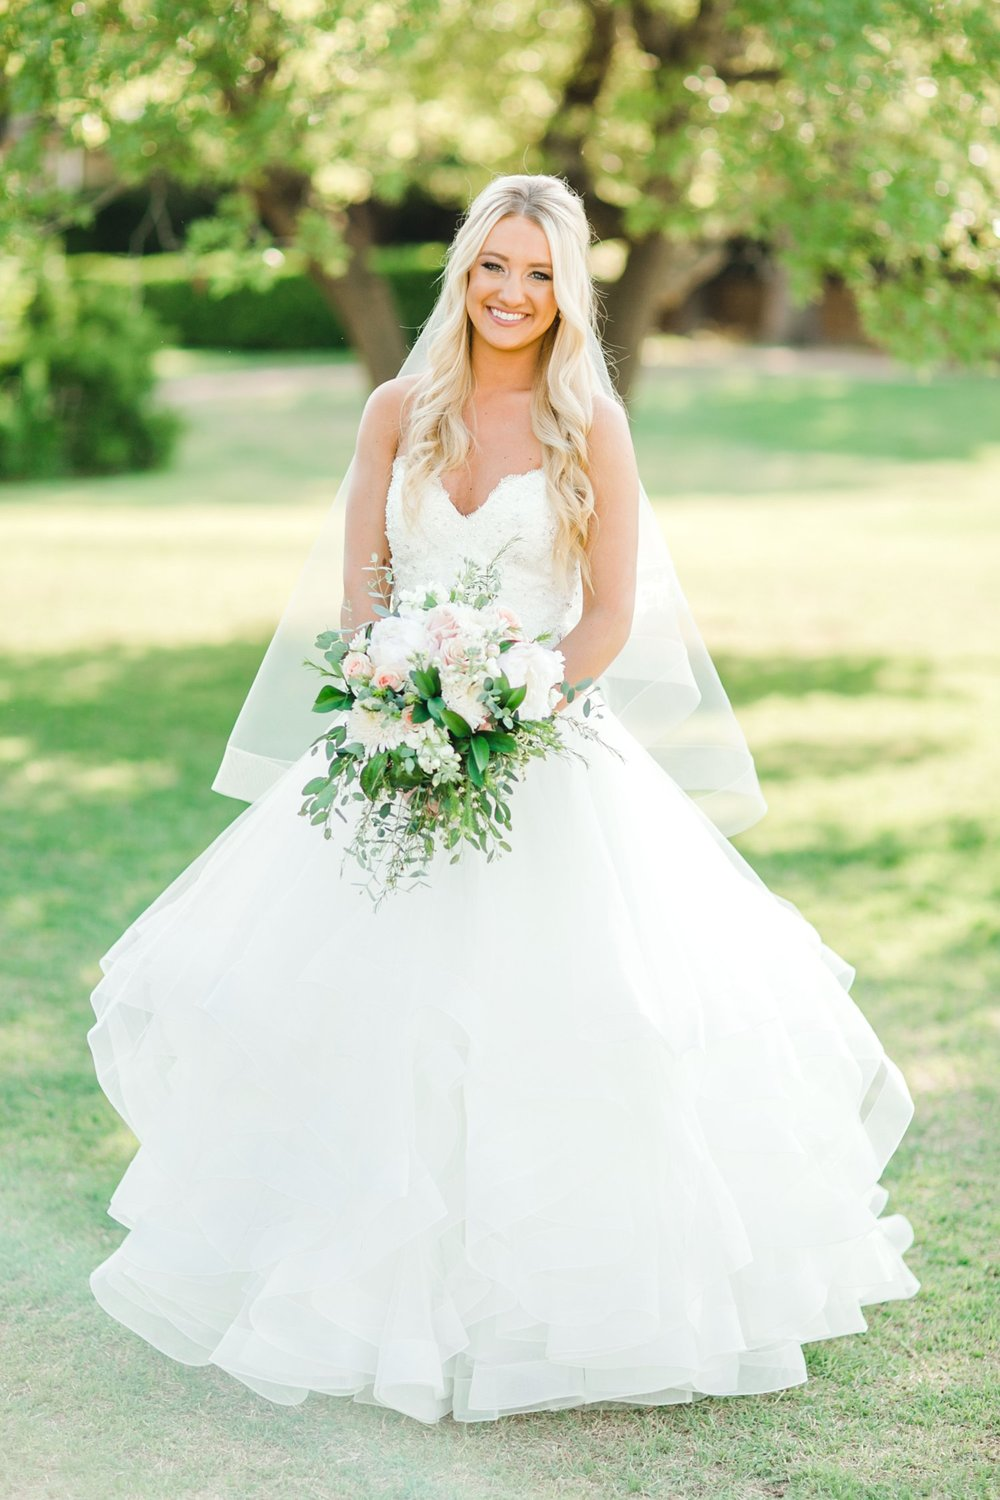 MADI_WRIGHT_BRIDALS_ALLEEJ_LUBBOCK_PHOTOGRAPHER0003.jpg